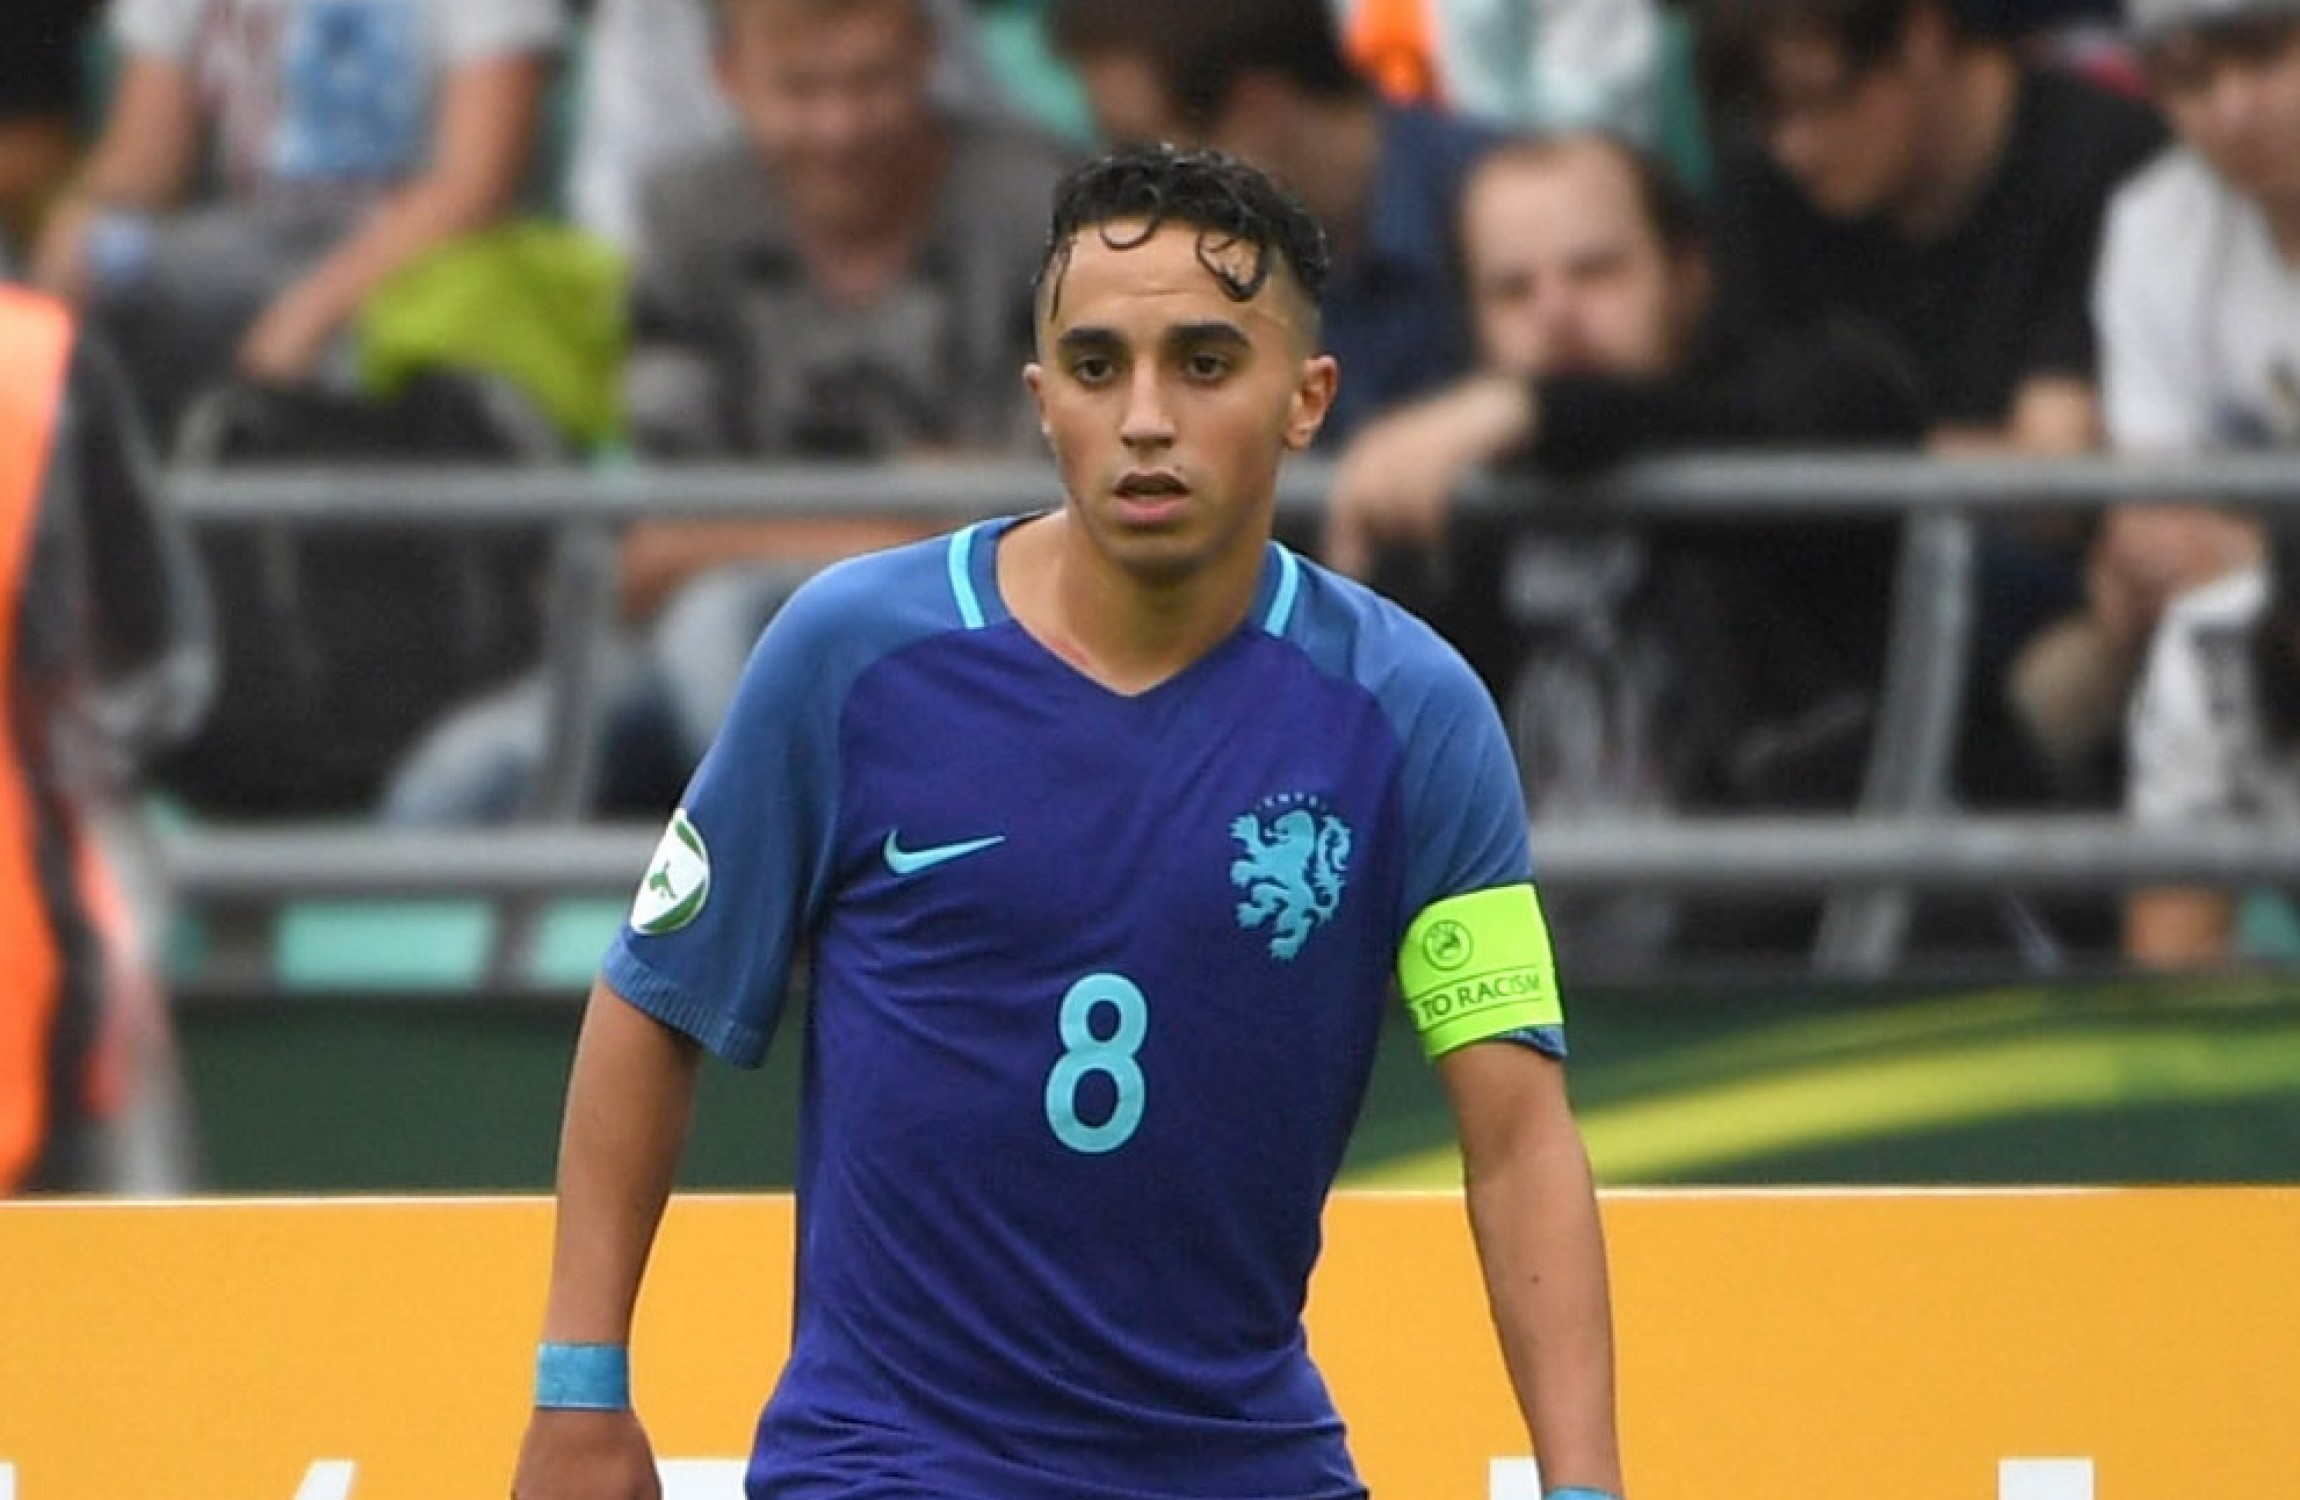 Ajax footballer Abdelhak Nouri suffers 'serious and permanent' brain damage after collapse